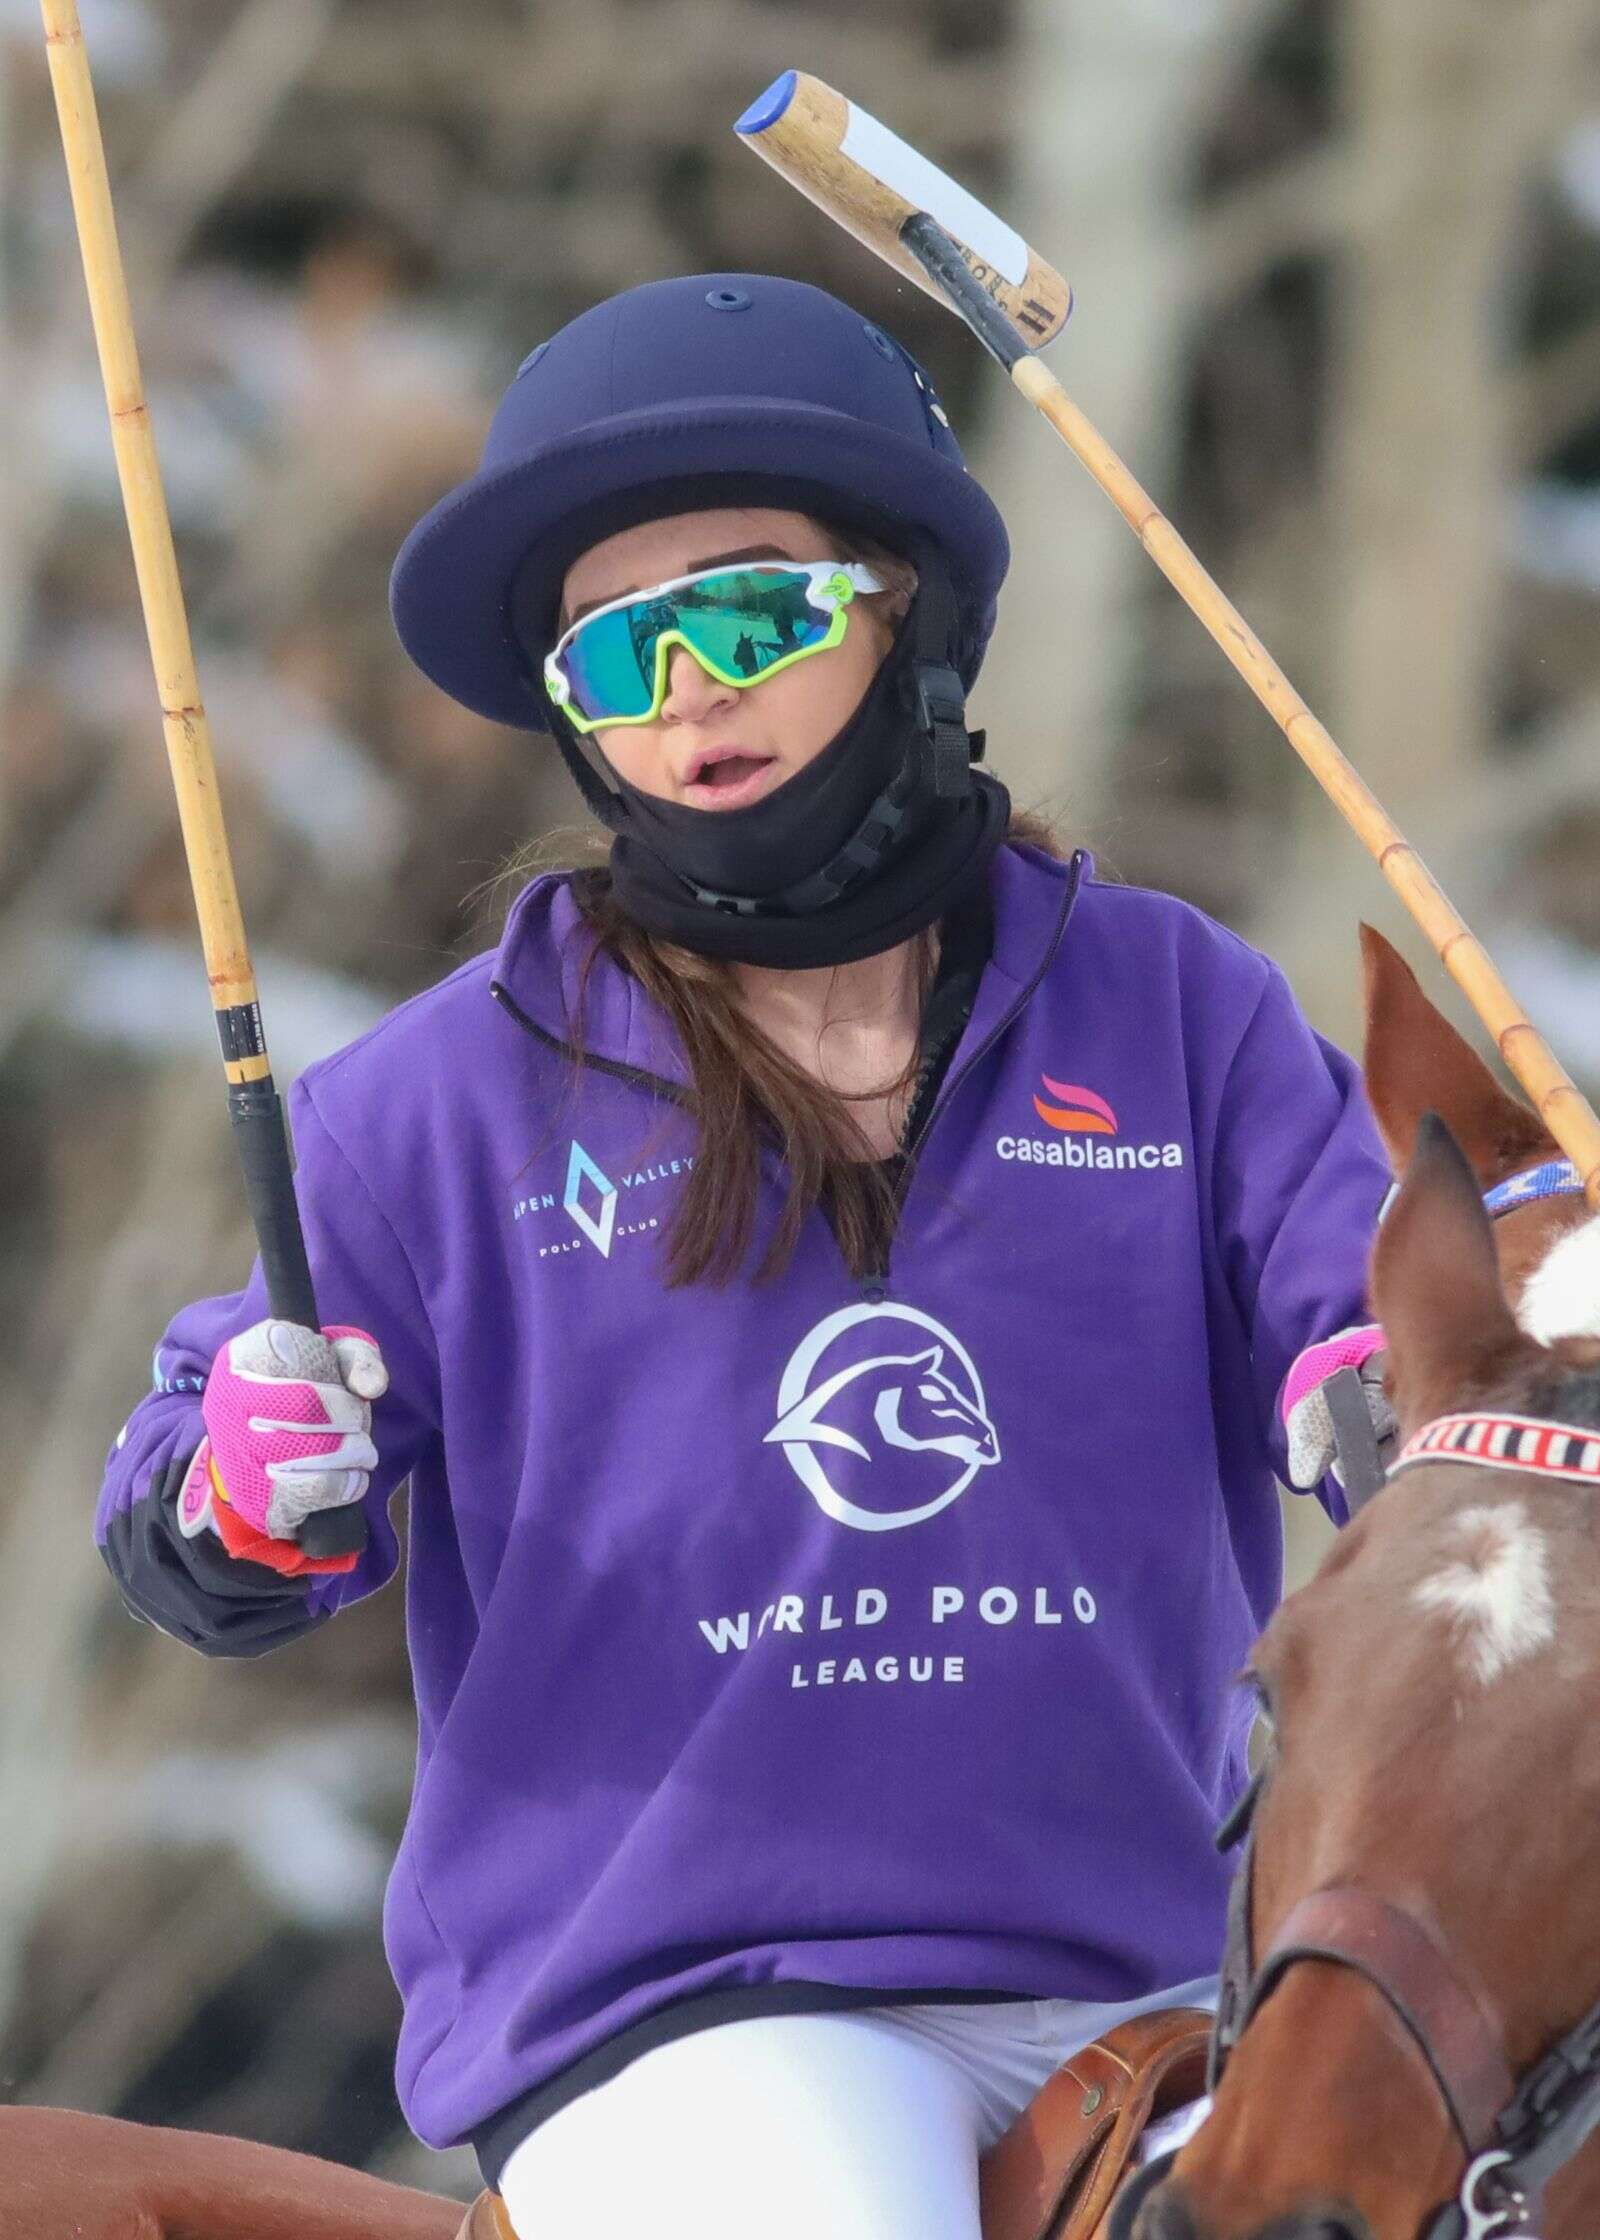 Riley Ganzi rides in the World Snow Polo Championship on Sunday, Dec. 20, 2020, at Rio Grande Park in Aspen. Photo by Austin Colbert/The Aspen Times.